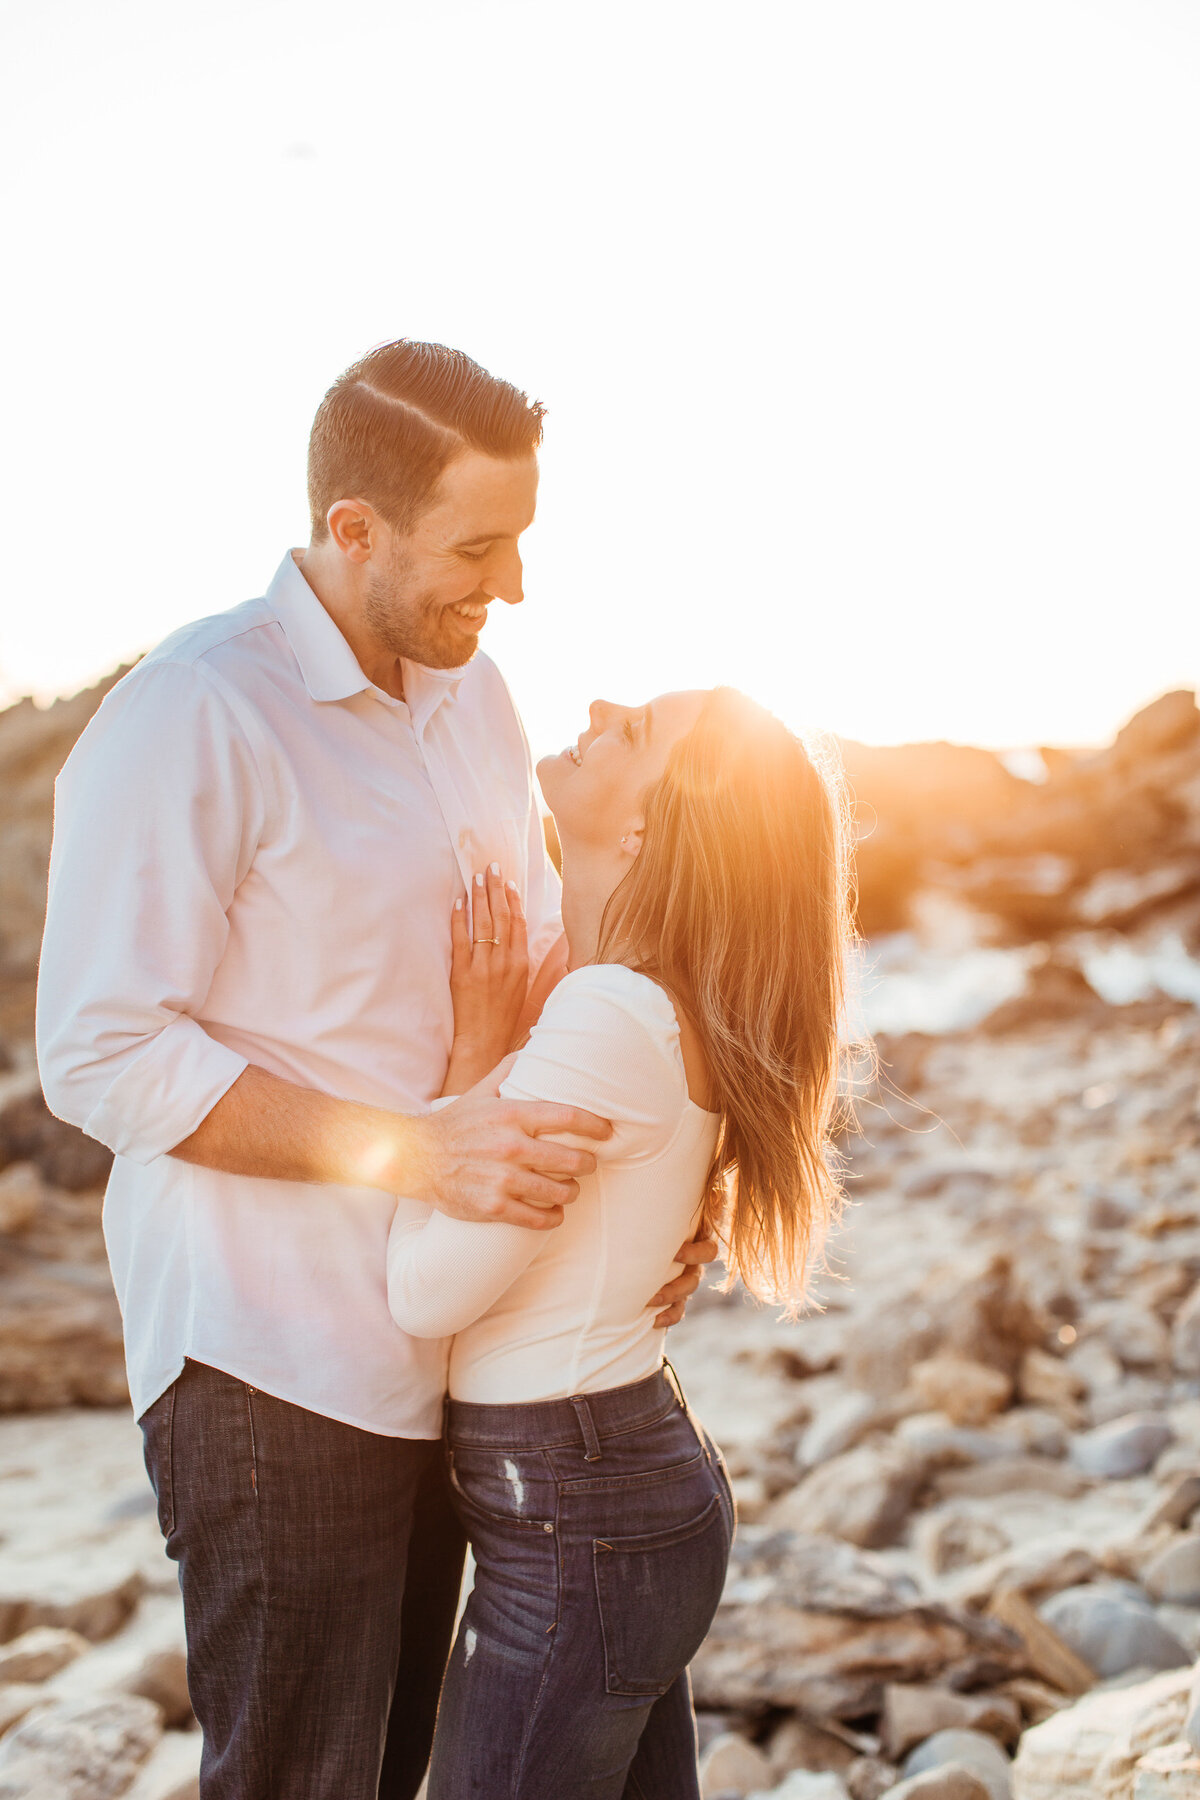 corona-del-mar-engagement-photos-oc-wedding-photographer-erin-marton-photography-27